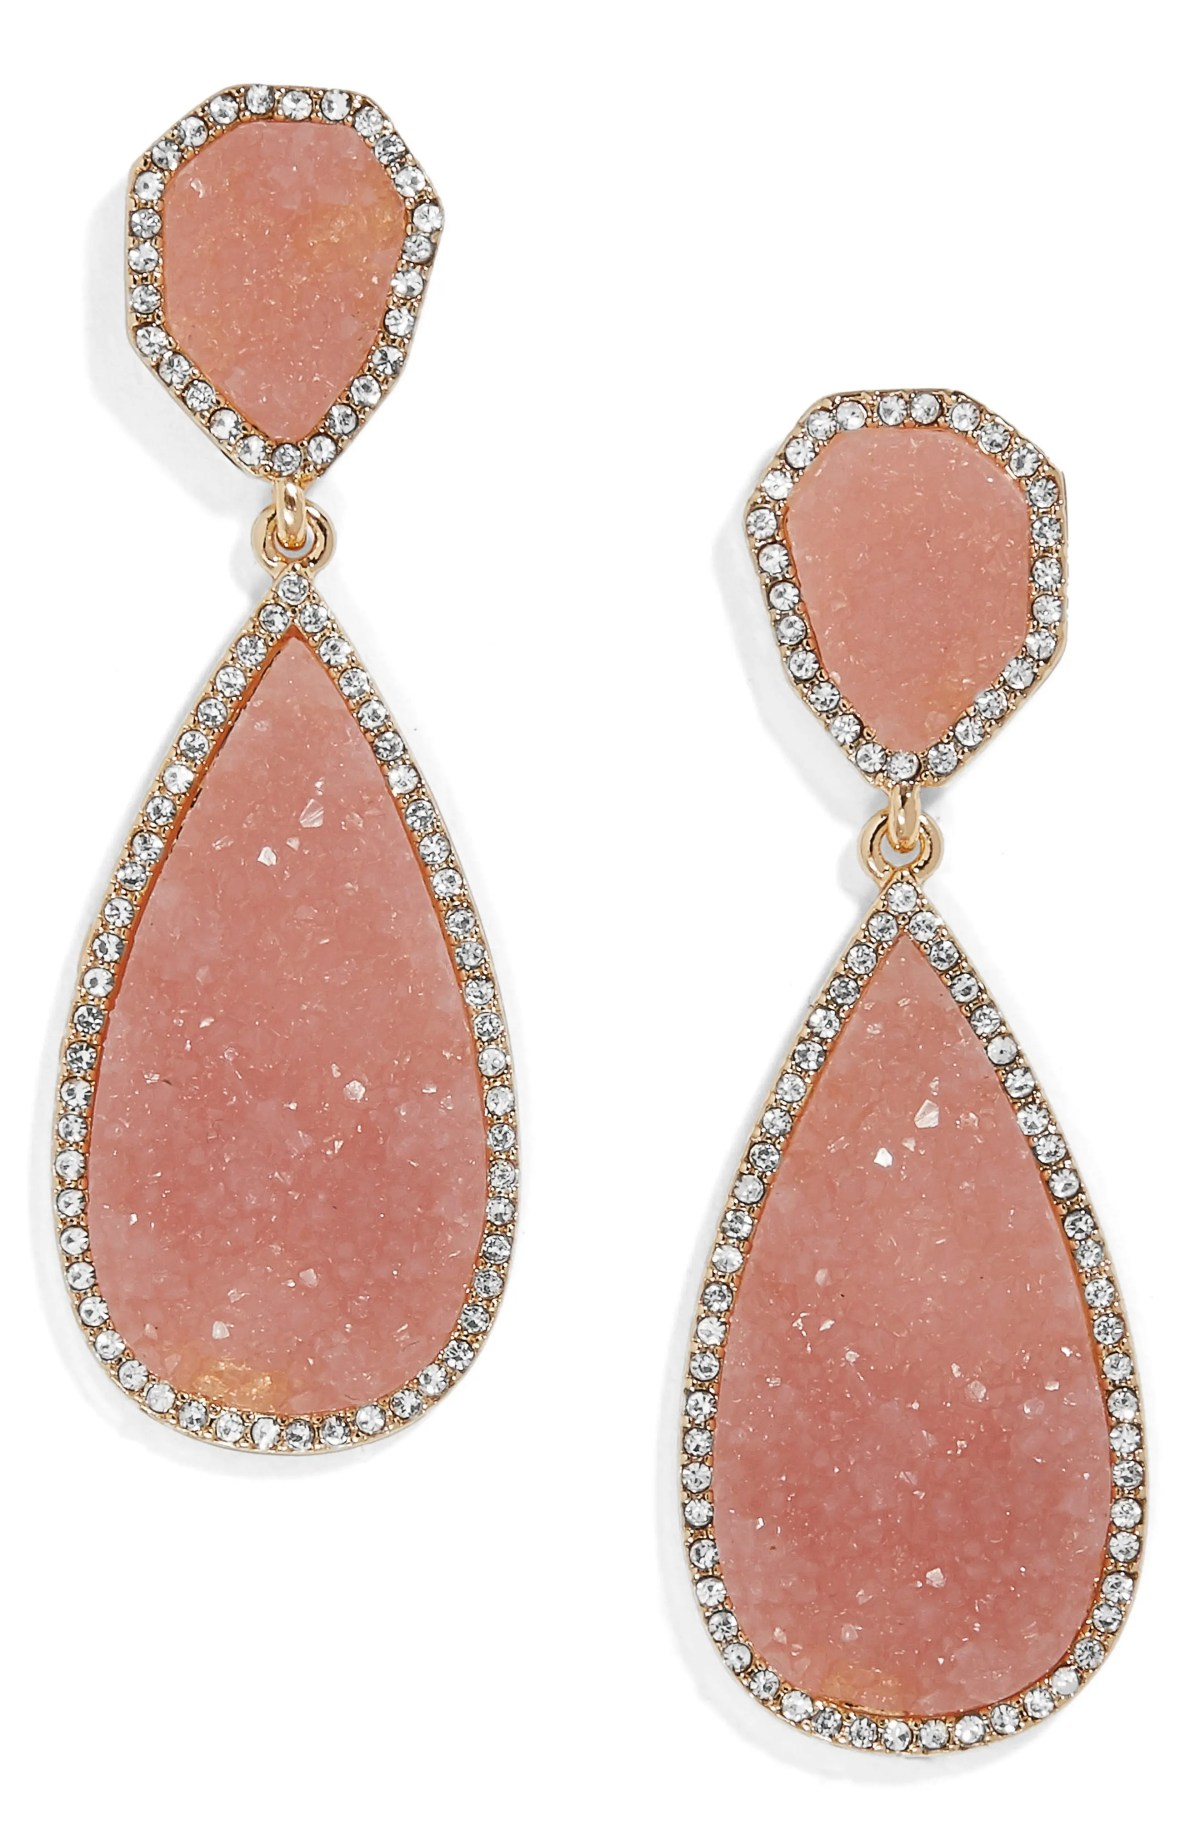 BAUBLEBAR Moonlight Drop Earrings, Main, color, PINK